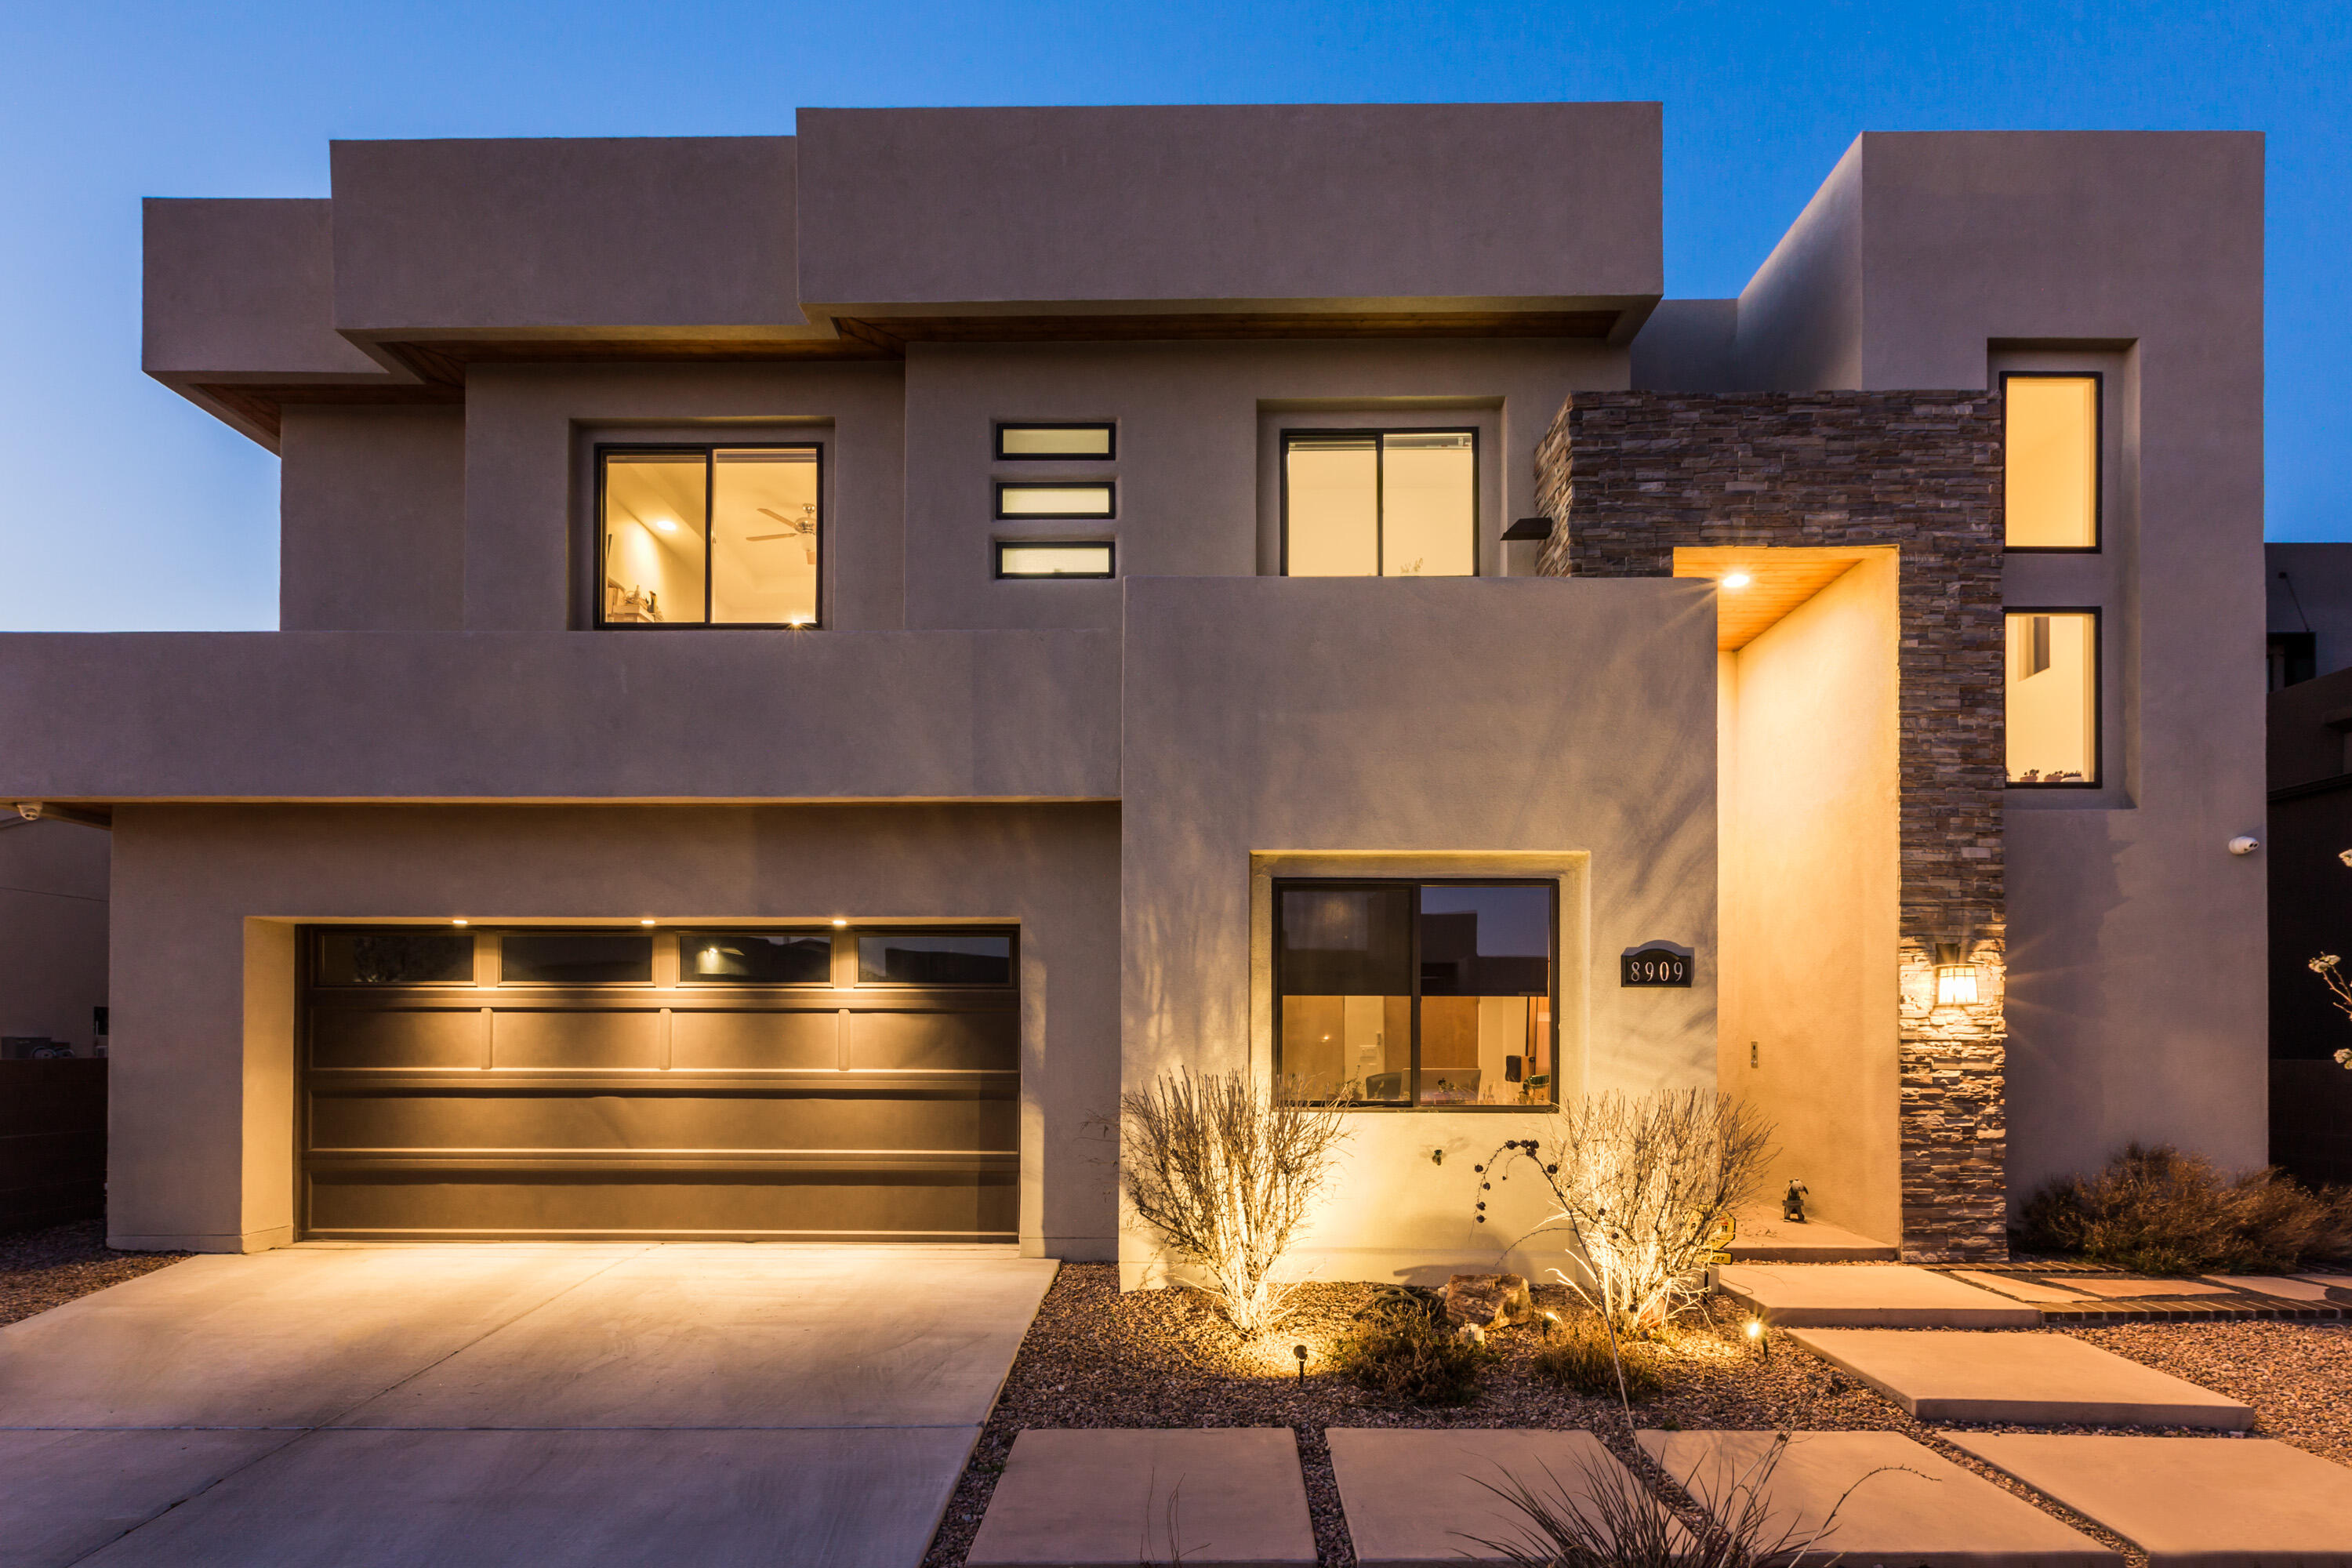 Contemporary Custom Built with all of the upgrades. Pool, SubZero, Amazing Views backing to Open Space. Two outdoor living areas, collapsable doors, open the family room to the outdoor space.Subzero/Wolf Appliance package, wet bar. This home is a must see.